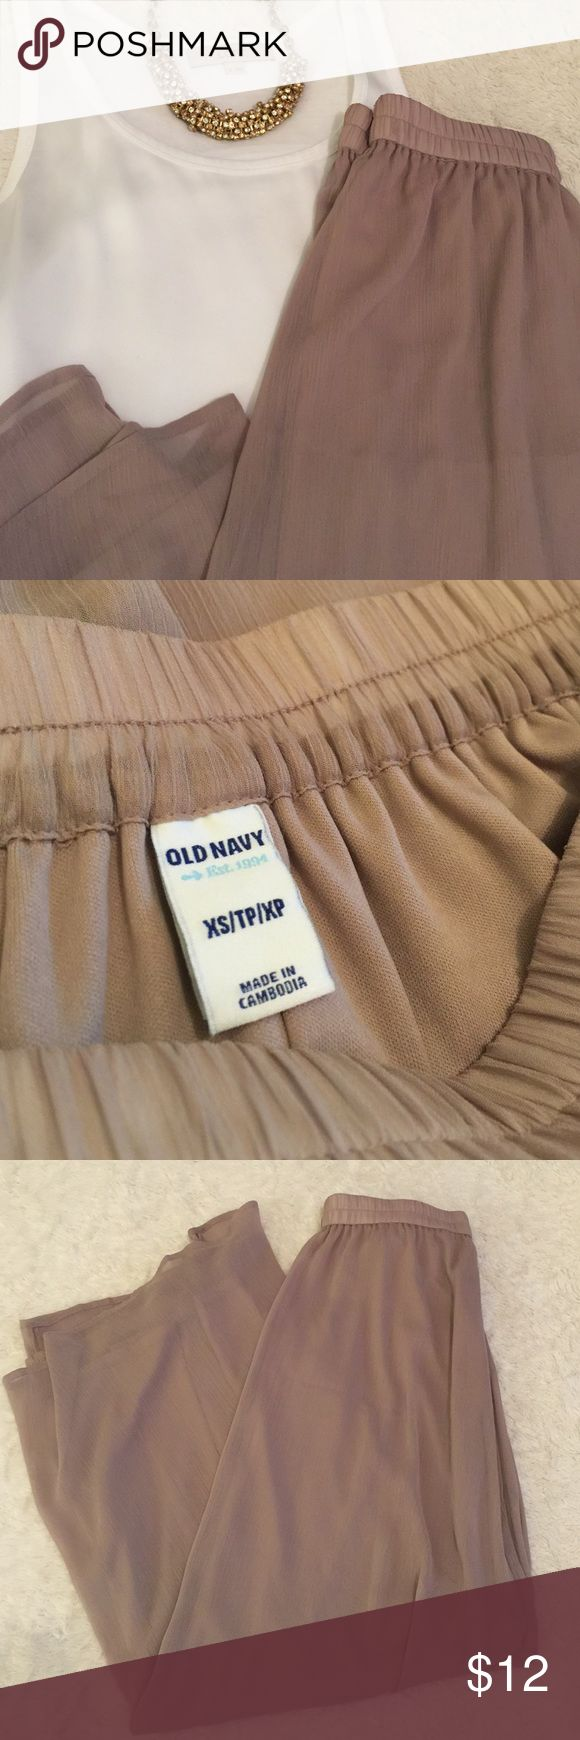 NWOT Old Navy Maxi Skirt Light and airy taupe colored Maxi skirt. Fully lined. Old Navy Skirts Maxi